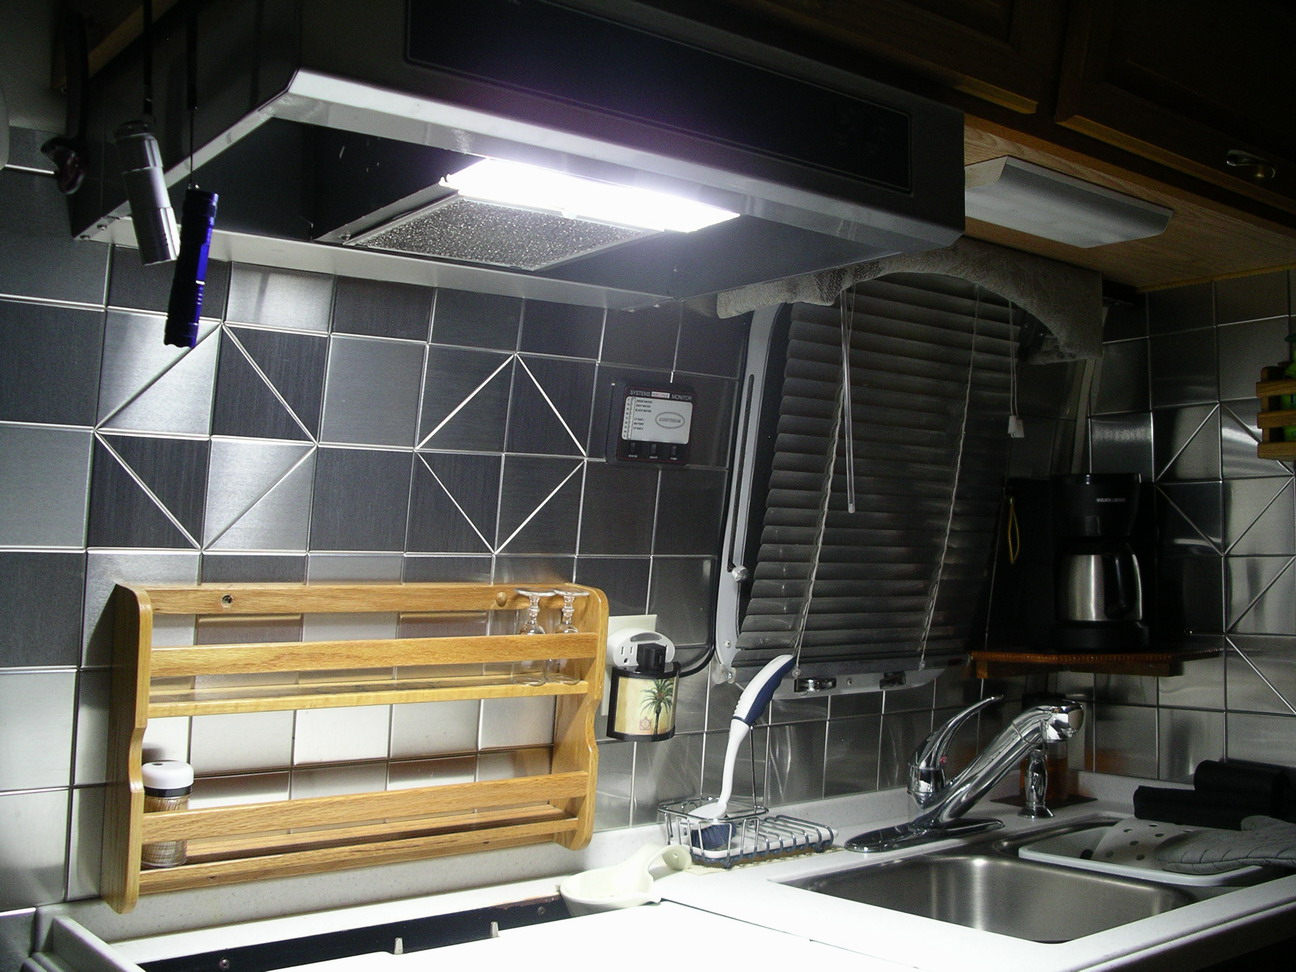 Click image for larger version  Name:stove_led.JPG Views:49 Size:332.1 KB ID:292088